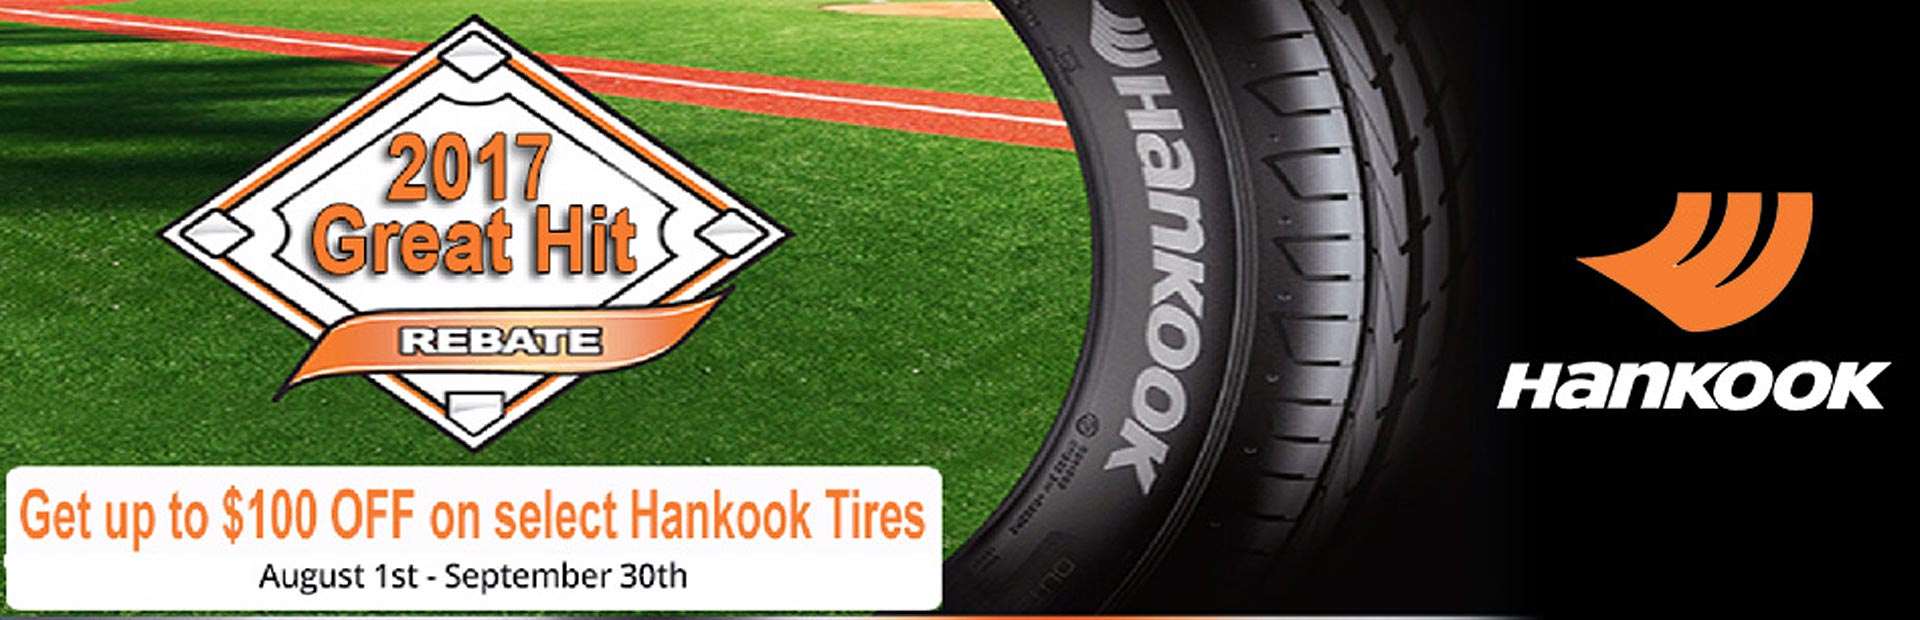 2017 Great Hit Rebate: Get up to $100 when you purchase a set of four select Hankook Tires